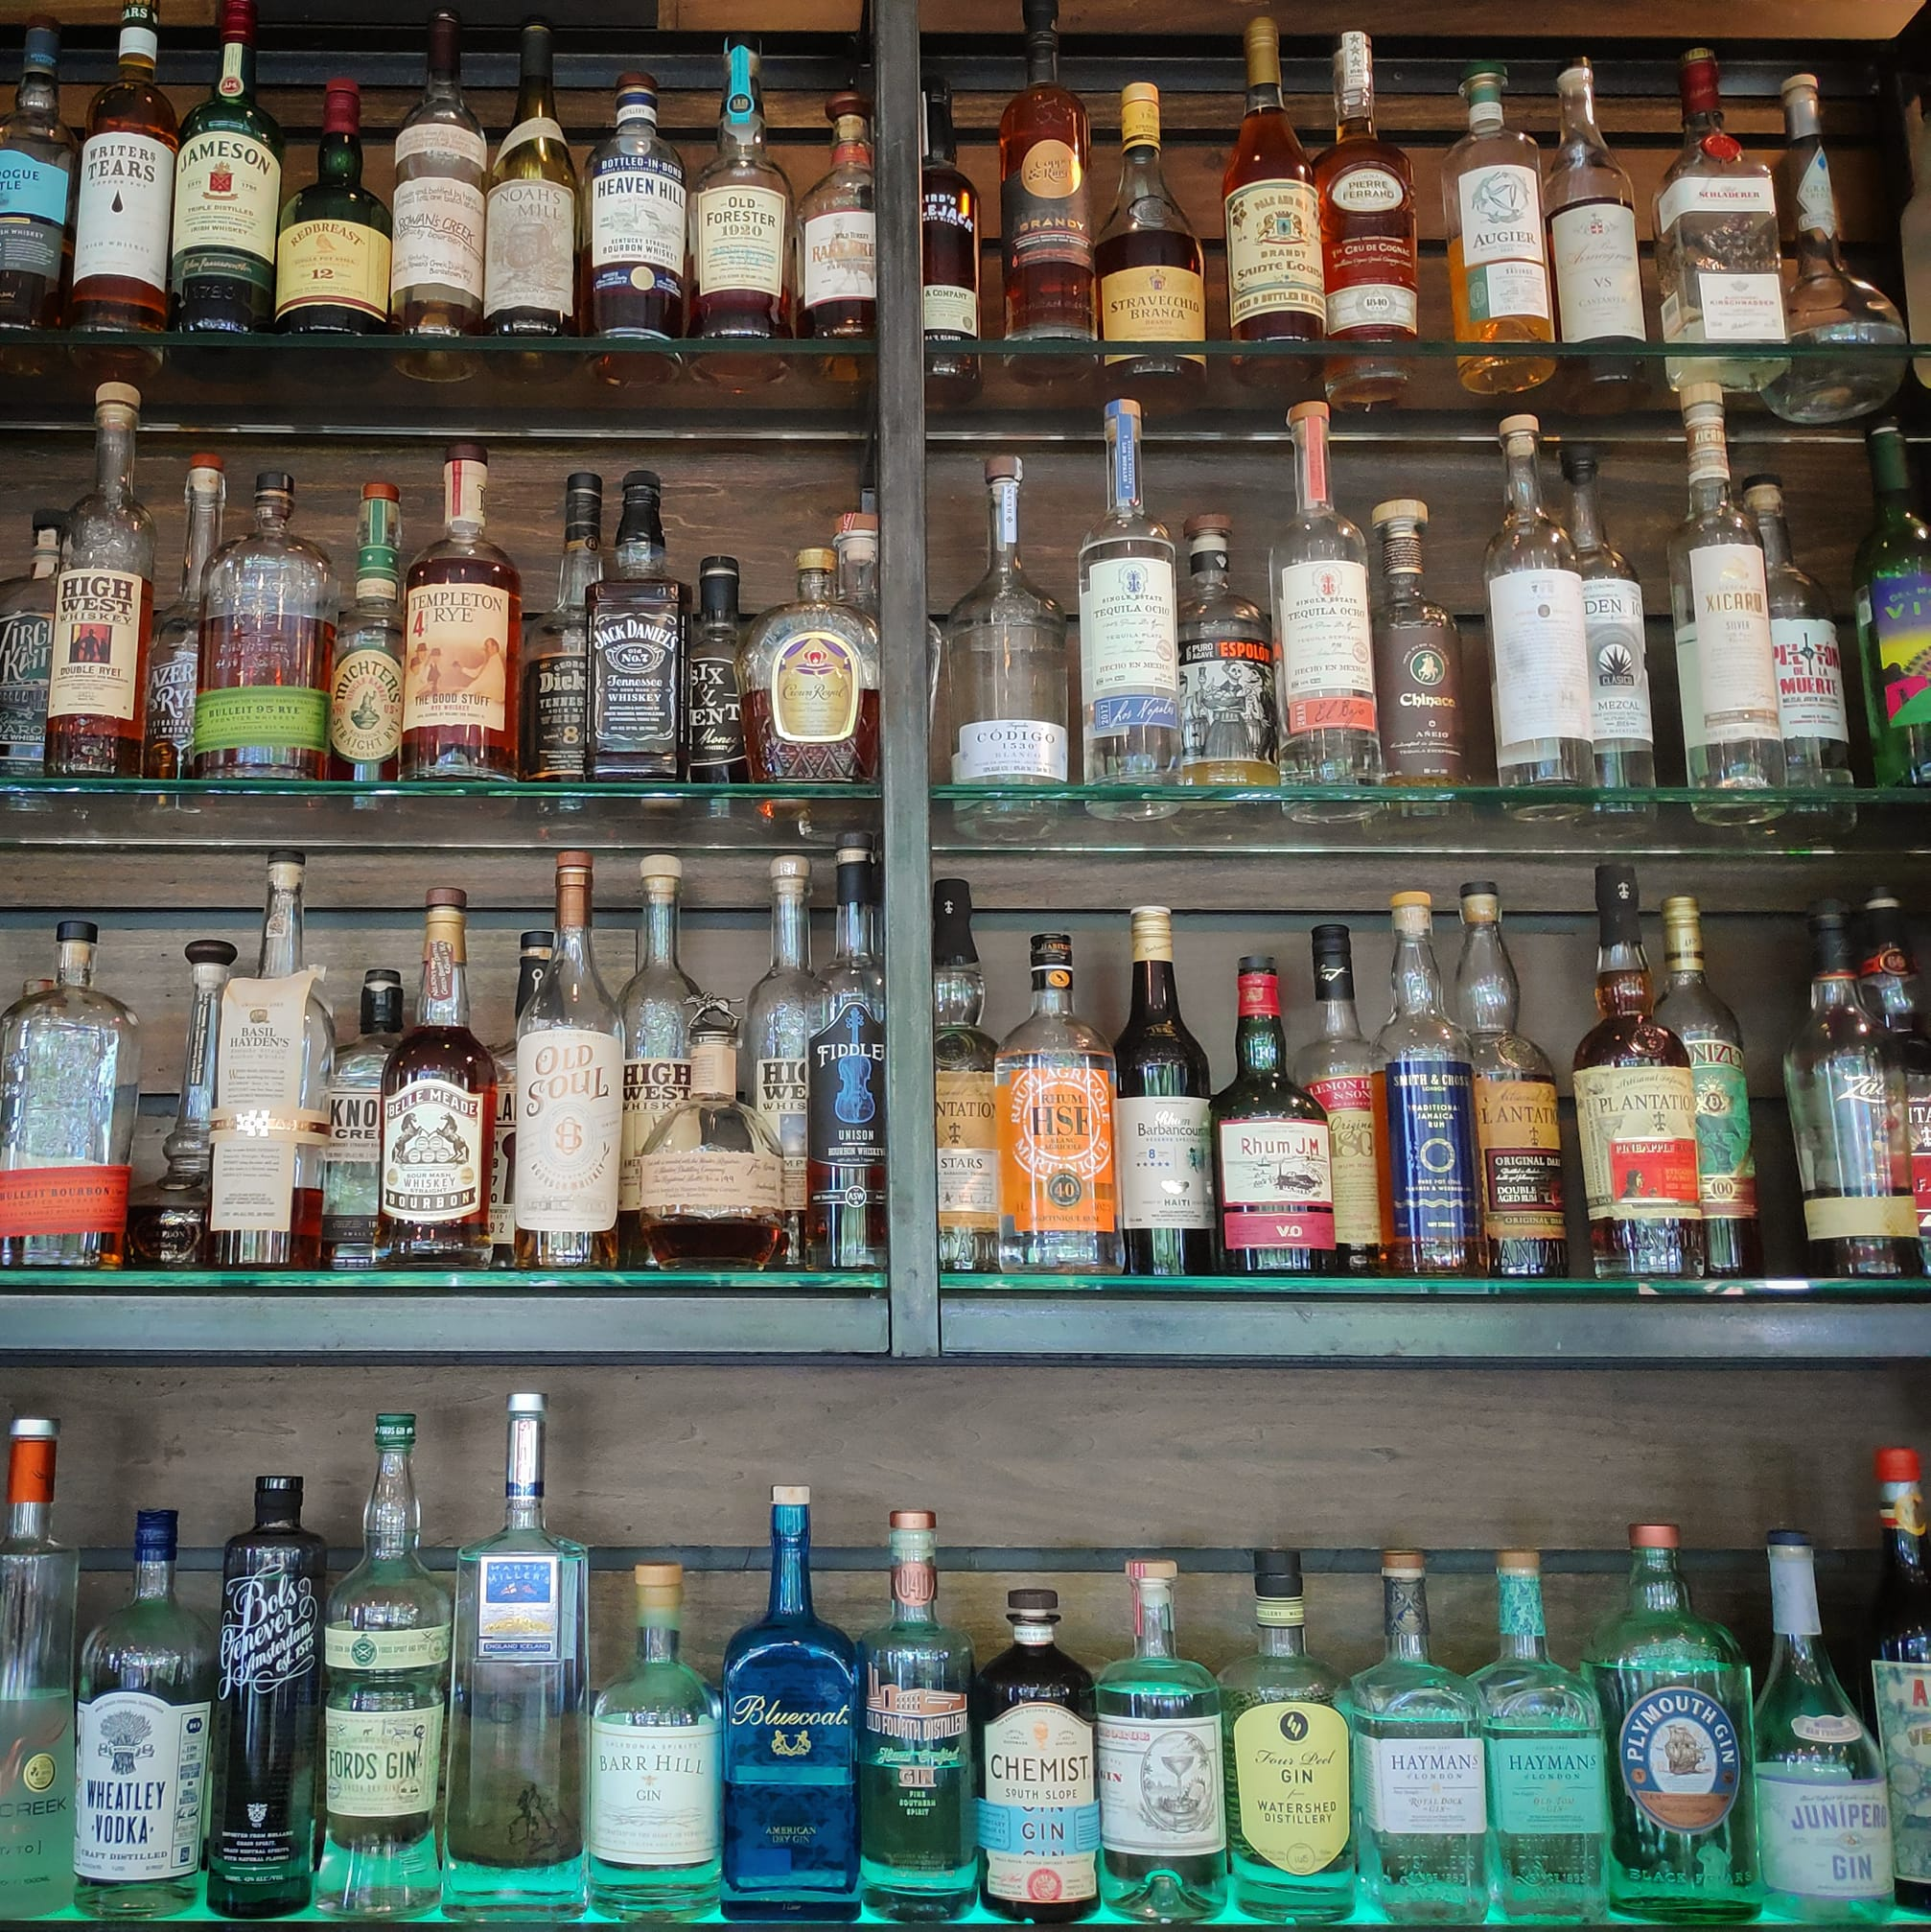 The back bar filled with liquor bottles at Ration and Dram (soon to be Dead End Drinks) in Kirkwood, atlanta